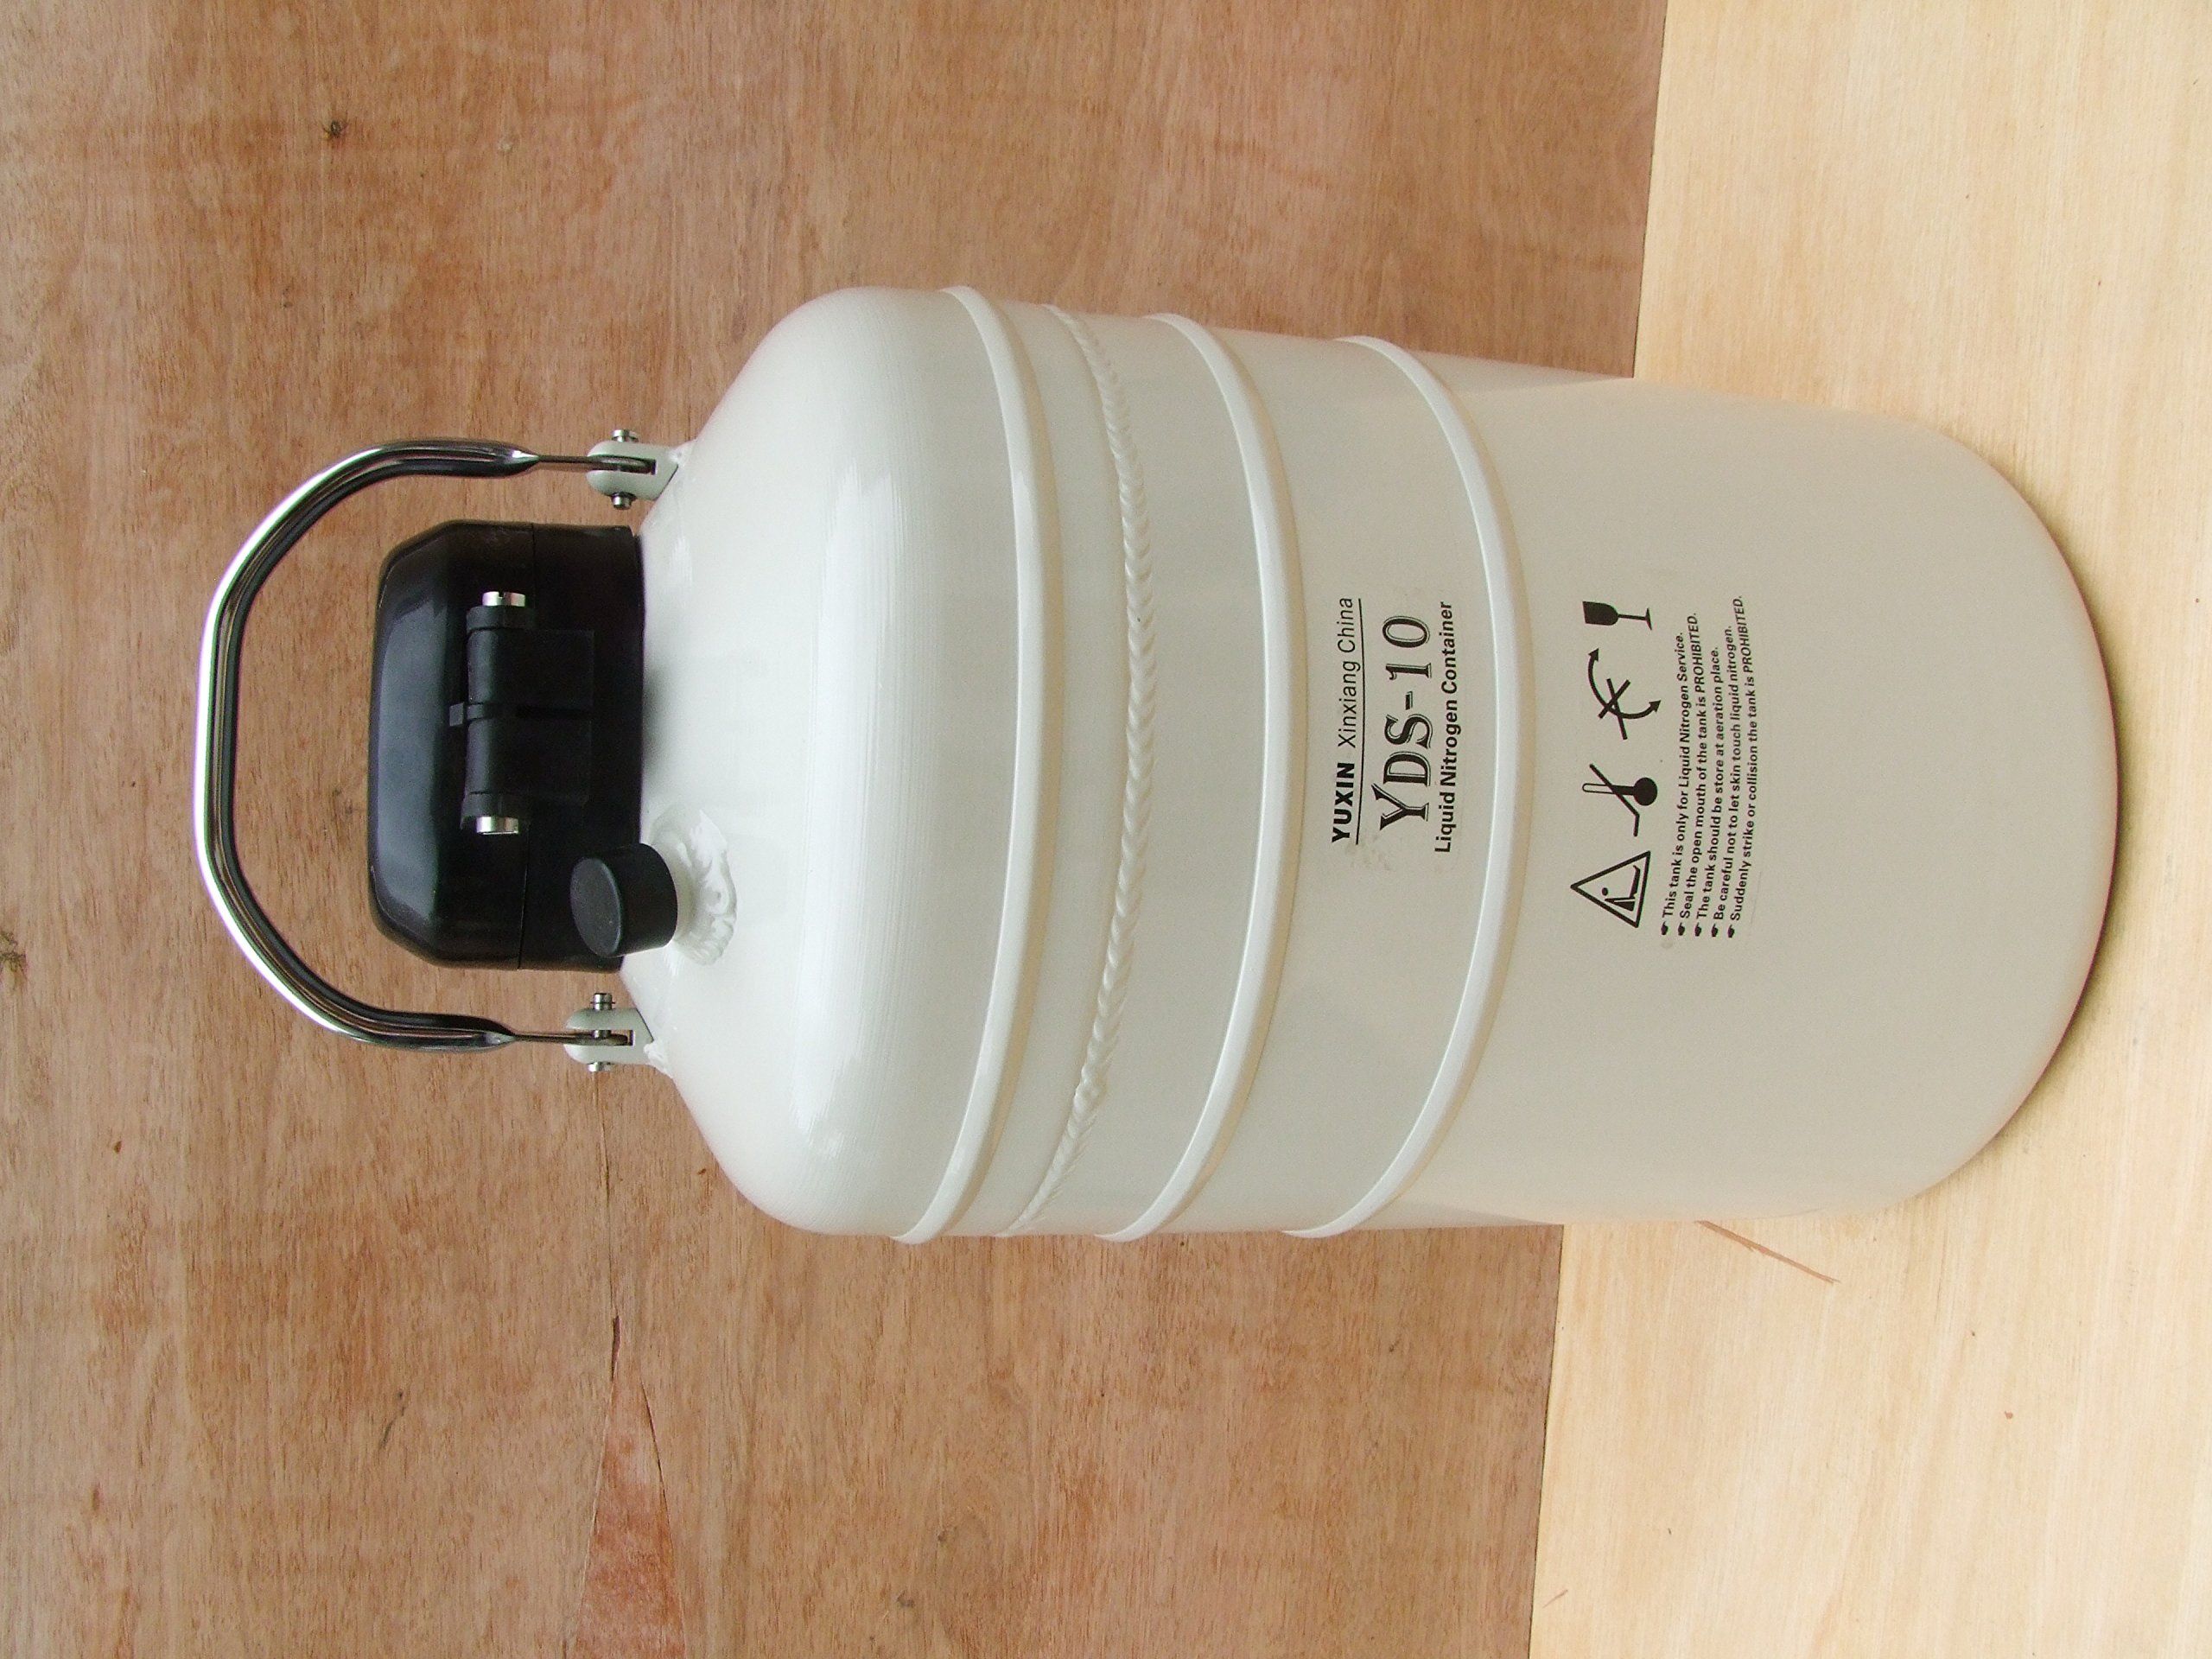 10 L Cryogenic Container Liquid Nitrogen Ln2 Tank with Straps and Carry Bag by HardwareFactoryStore.com (Image #2)